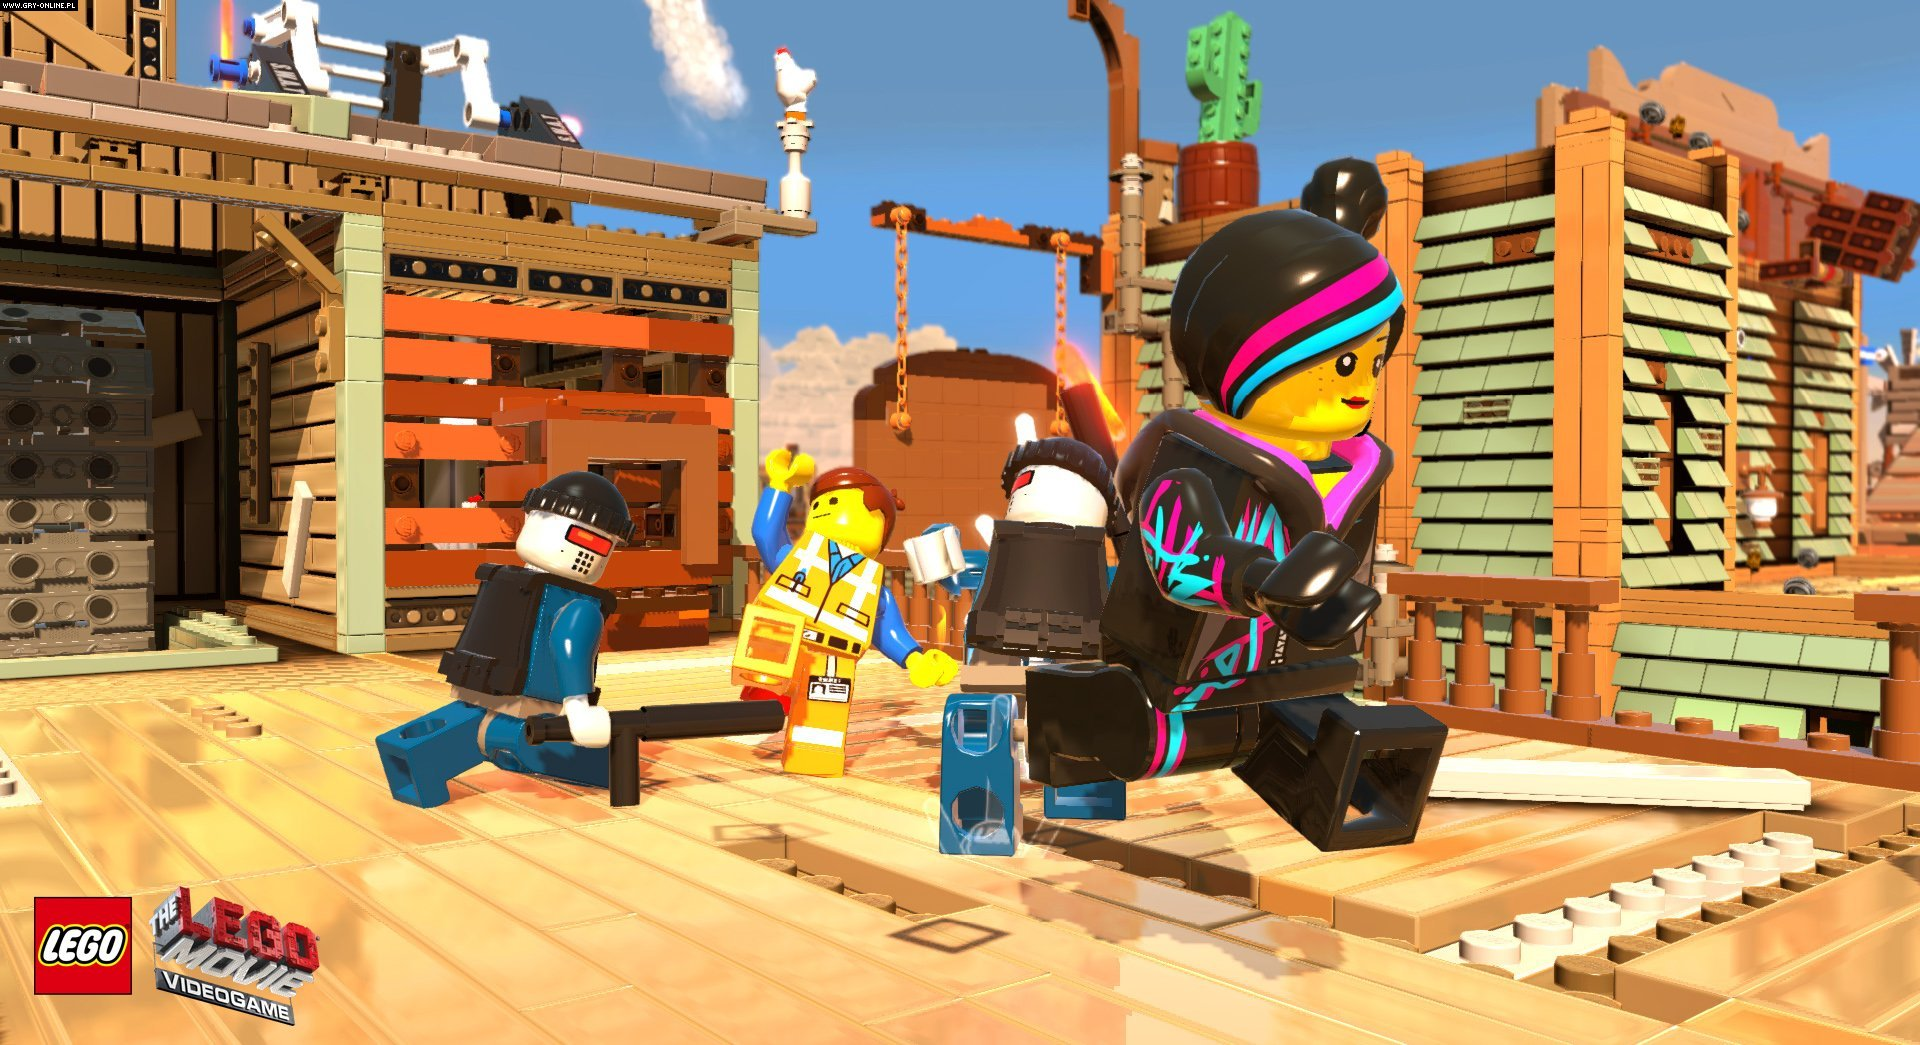 LEGO Przygoda gra wideo PC, X360, PS3, PS4, XONE Gry Screen 8/12, TT Fusion, Warner Bros. Interactive Entertainment